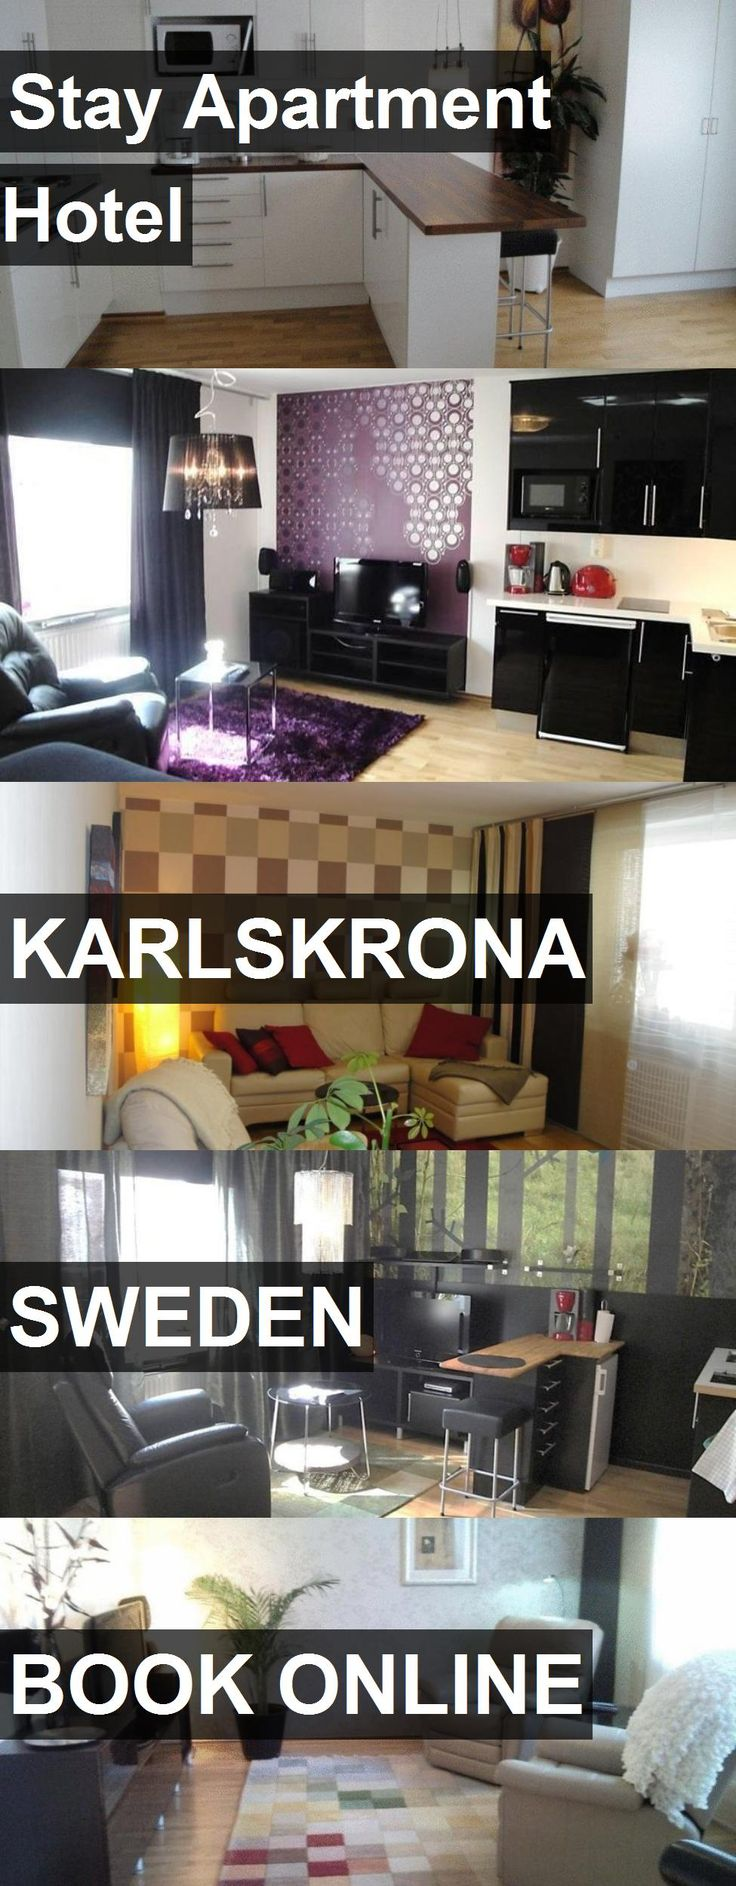 Hotel Stay Apartment Hotel in Karlskrona, Sweden. For more information, photos, reviews and best prices please follow the link. #Sweden #Karlskrona #StayApartmentHotel #hotel #travel #vacation